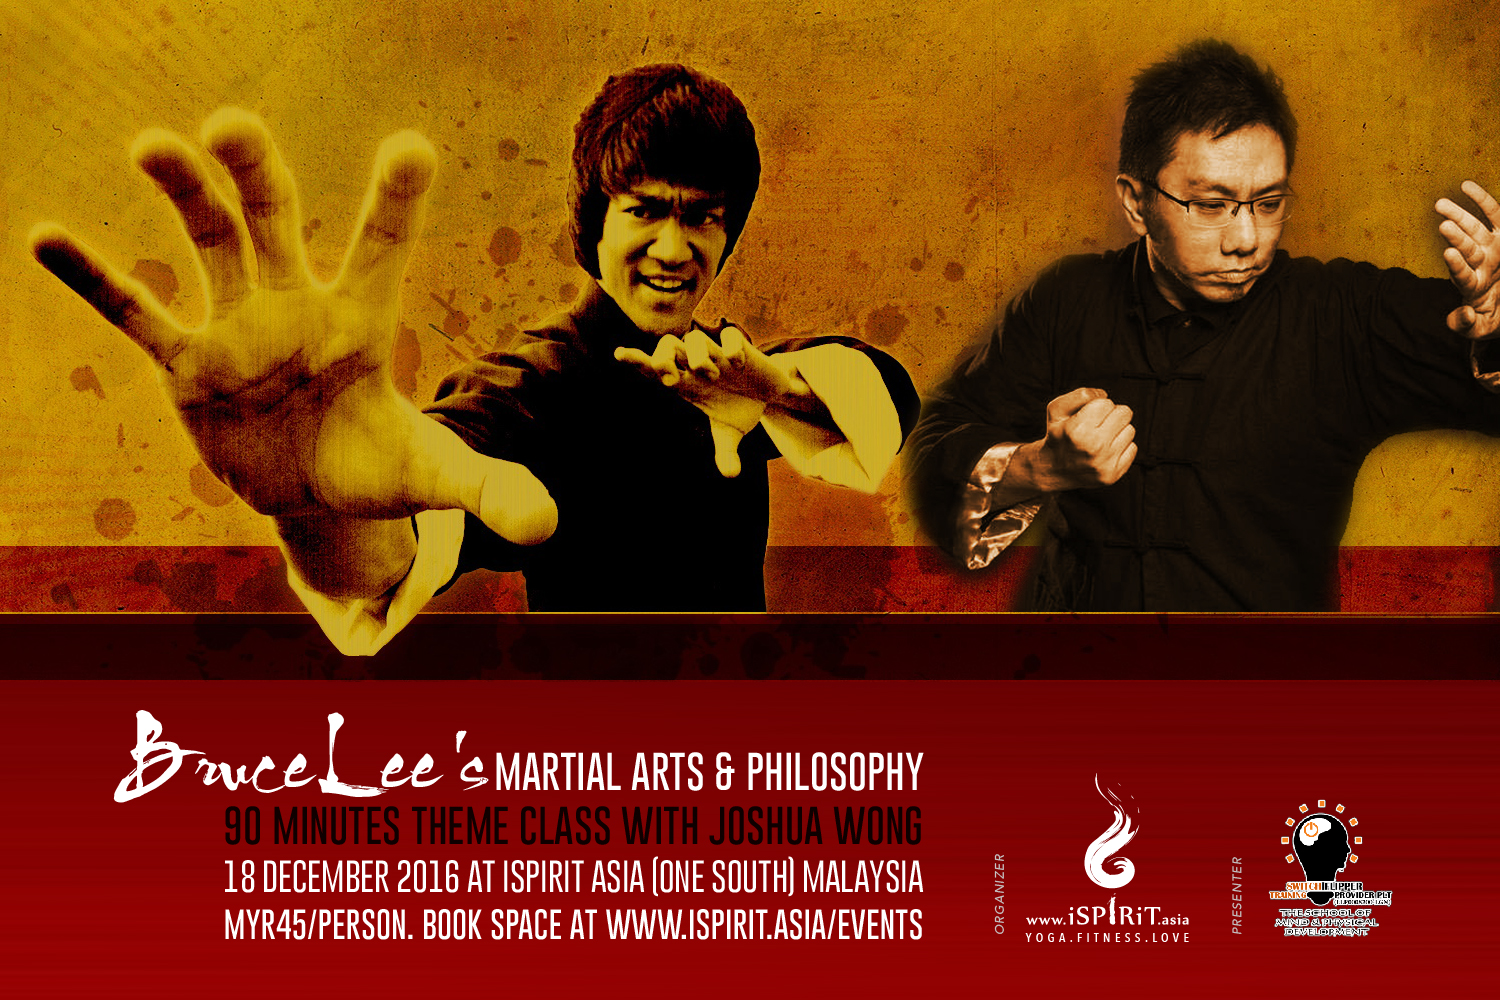 Bruce lee's martial arts and philosophy